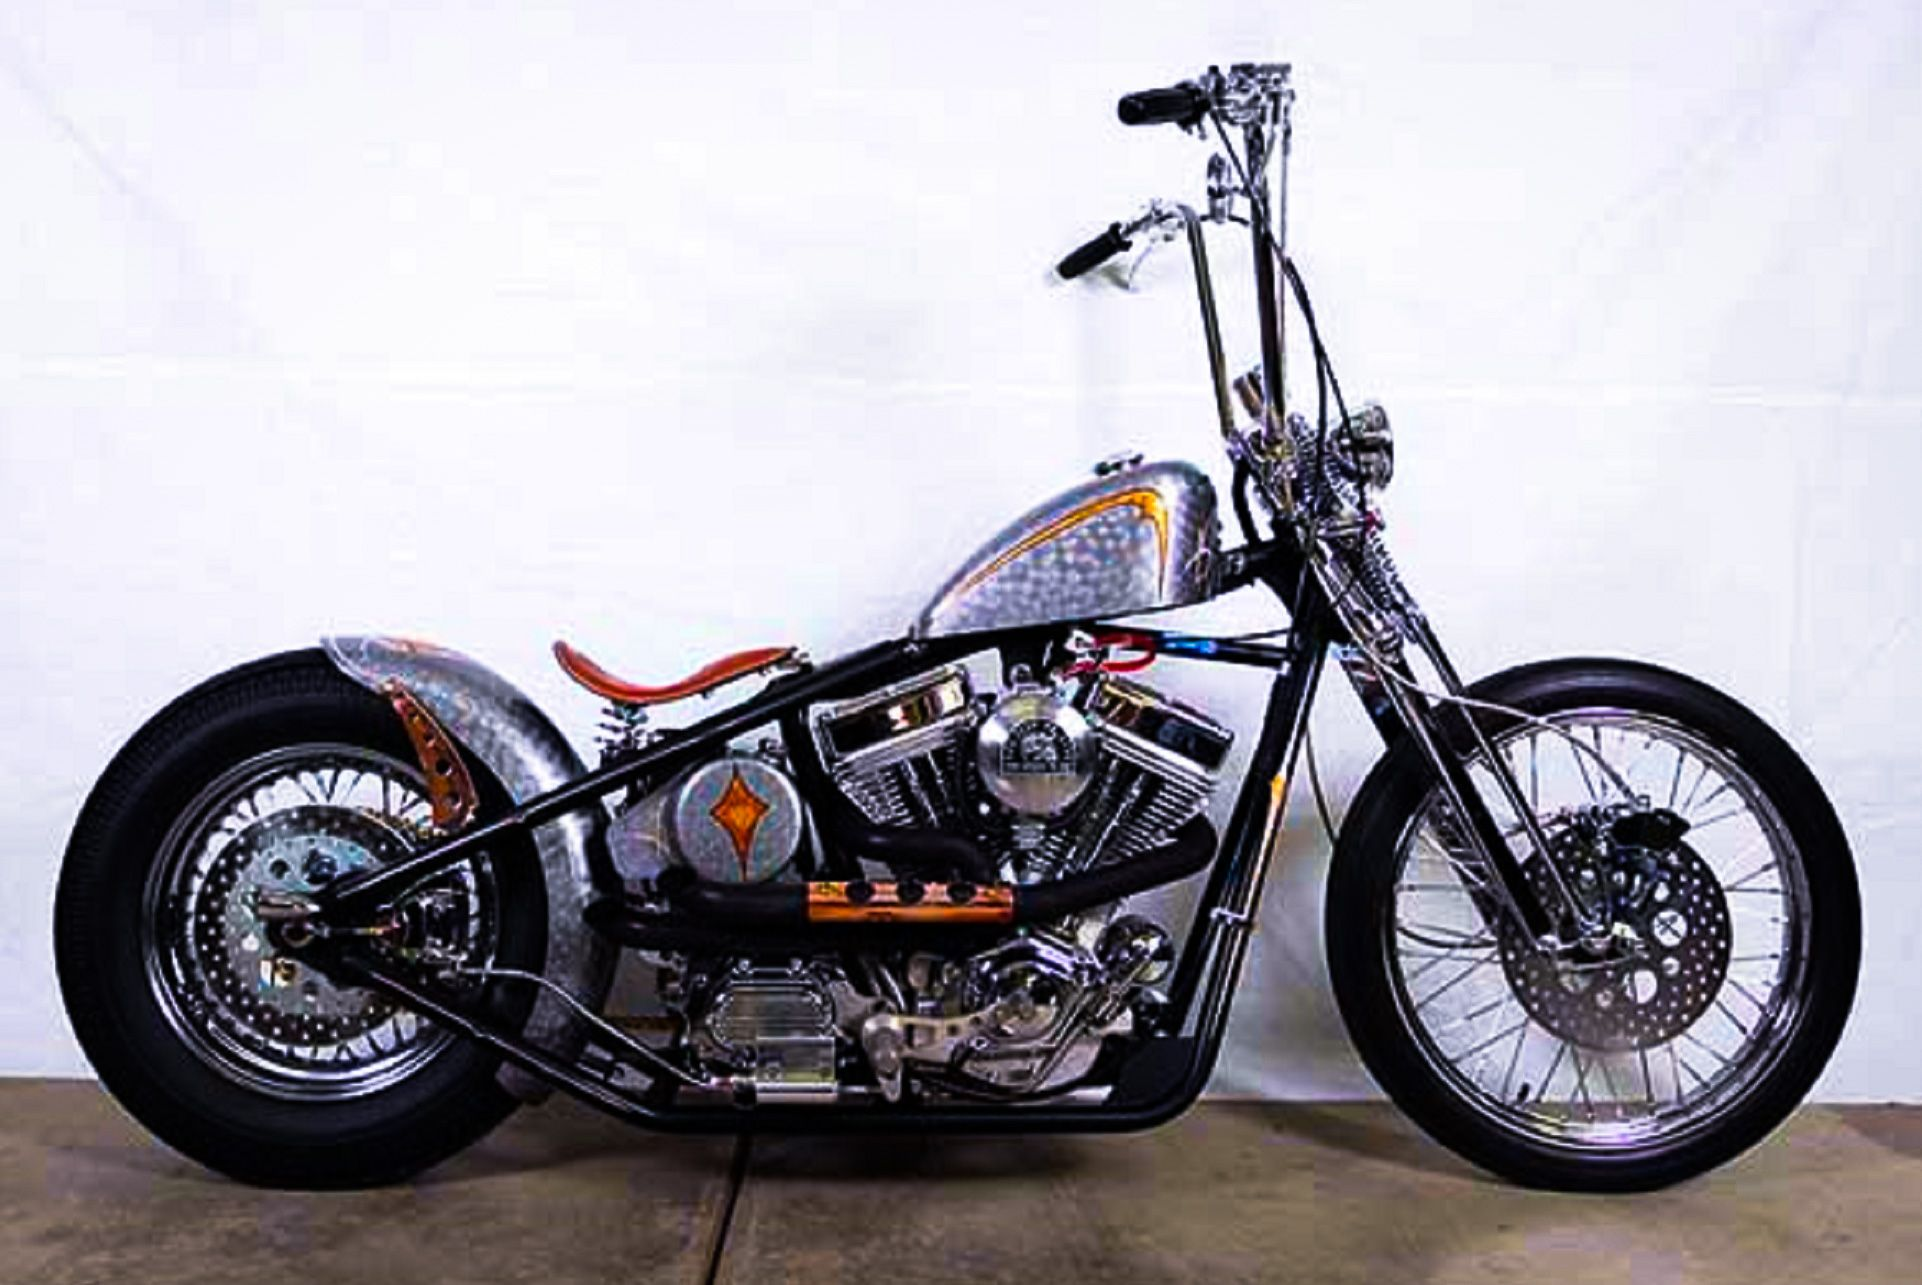 Pin by Harley Davidson News Pics Videos on Harley Davidson Choppers Harley Davidson Golf Cart Motor Html on